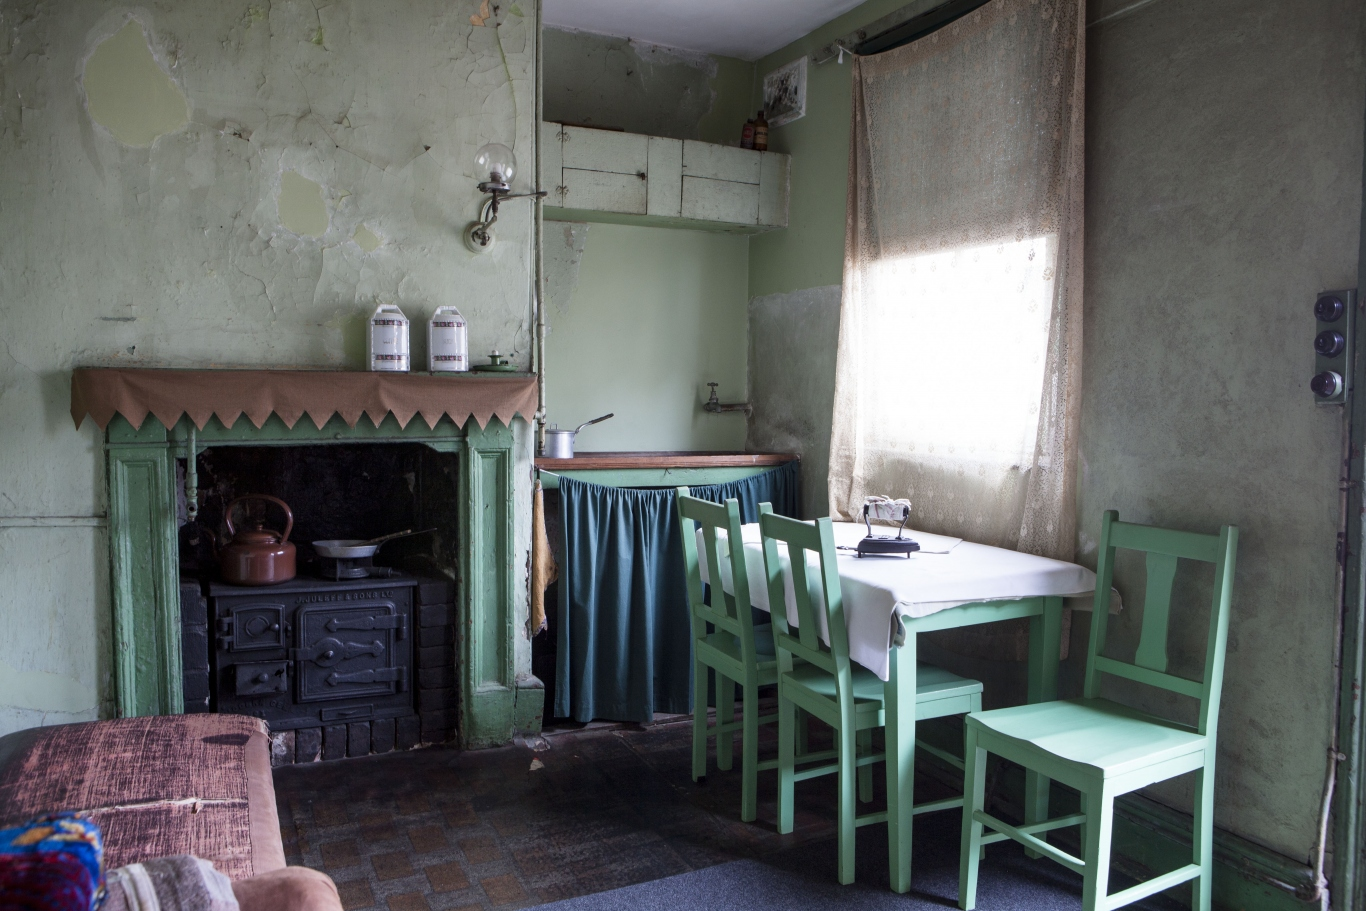 colour photograph of roughly furnished kitchen with green painted furniture, packing case cupboards besides a large fireplace with black stove inset and mantle shelf with fabric valance and containers. There's a gas bracket on the wall with a glass lamp.